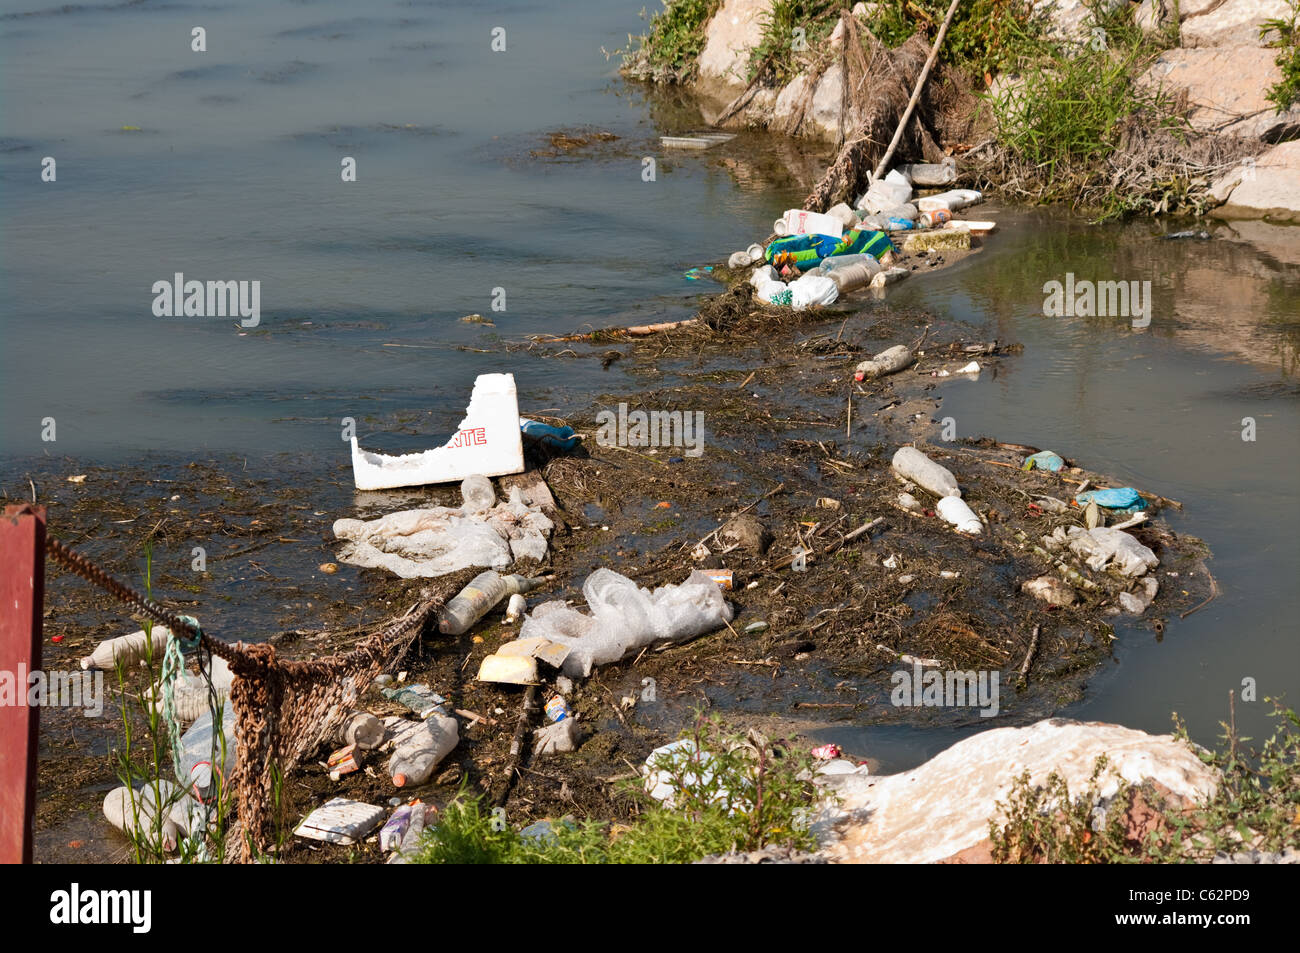 River pollution caused by human waste and discarded rubbish, in a Spanish river - Stock Image